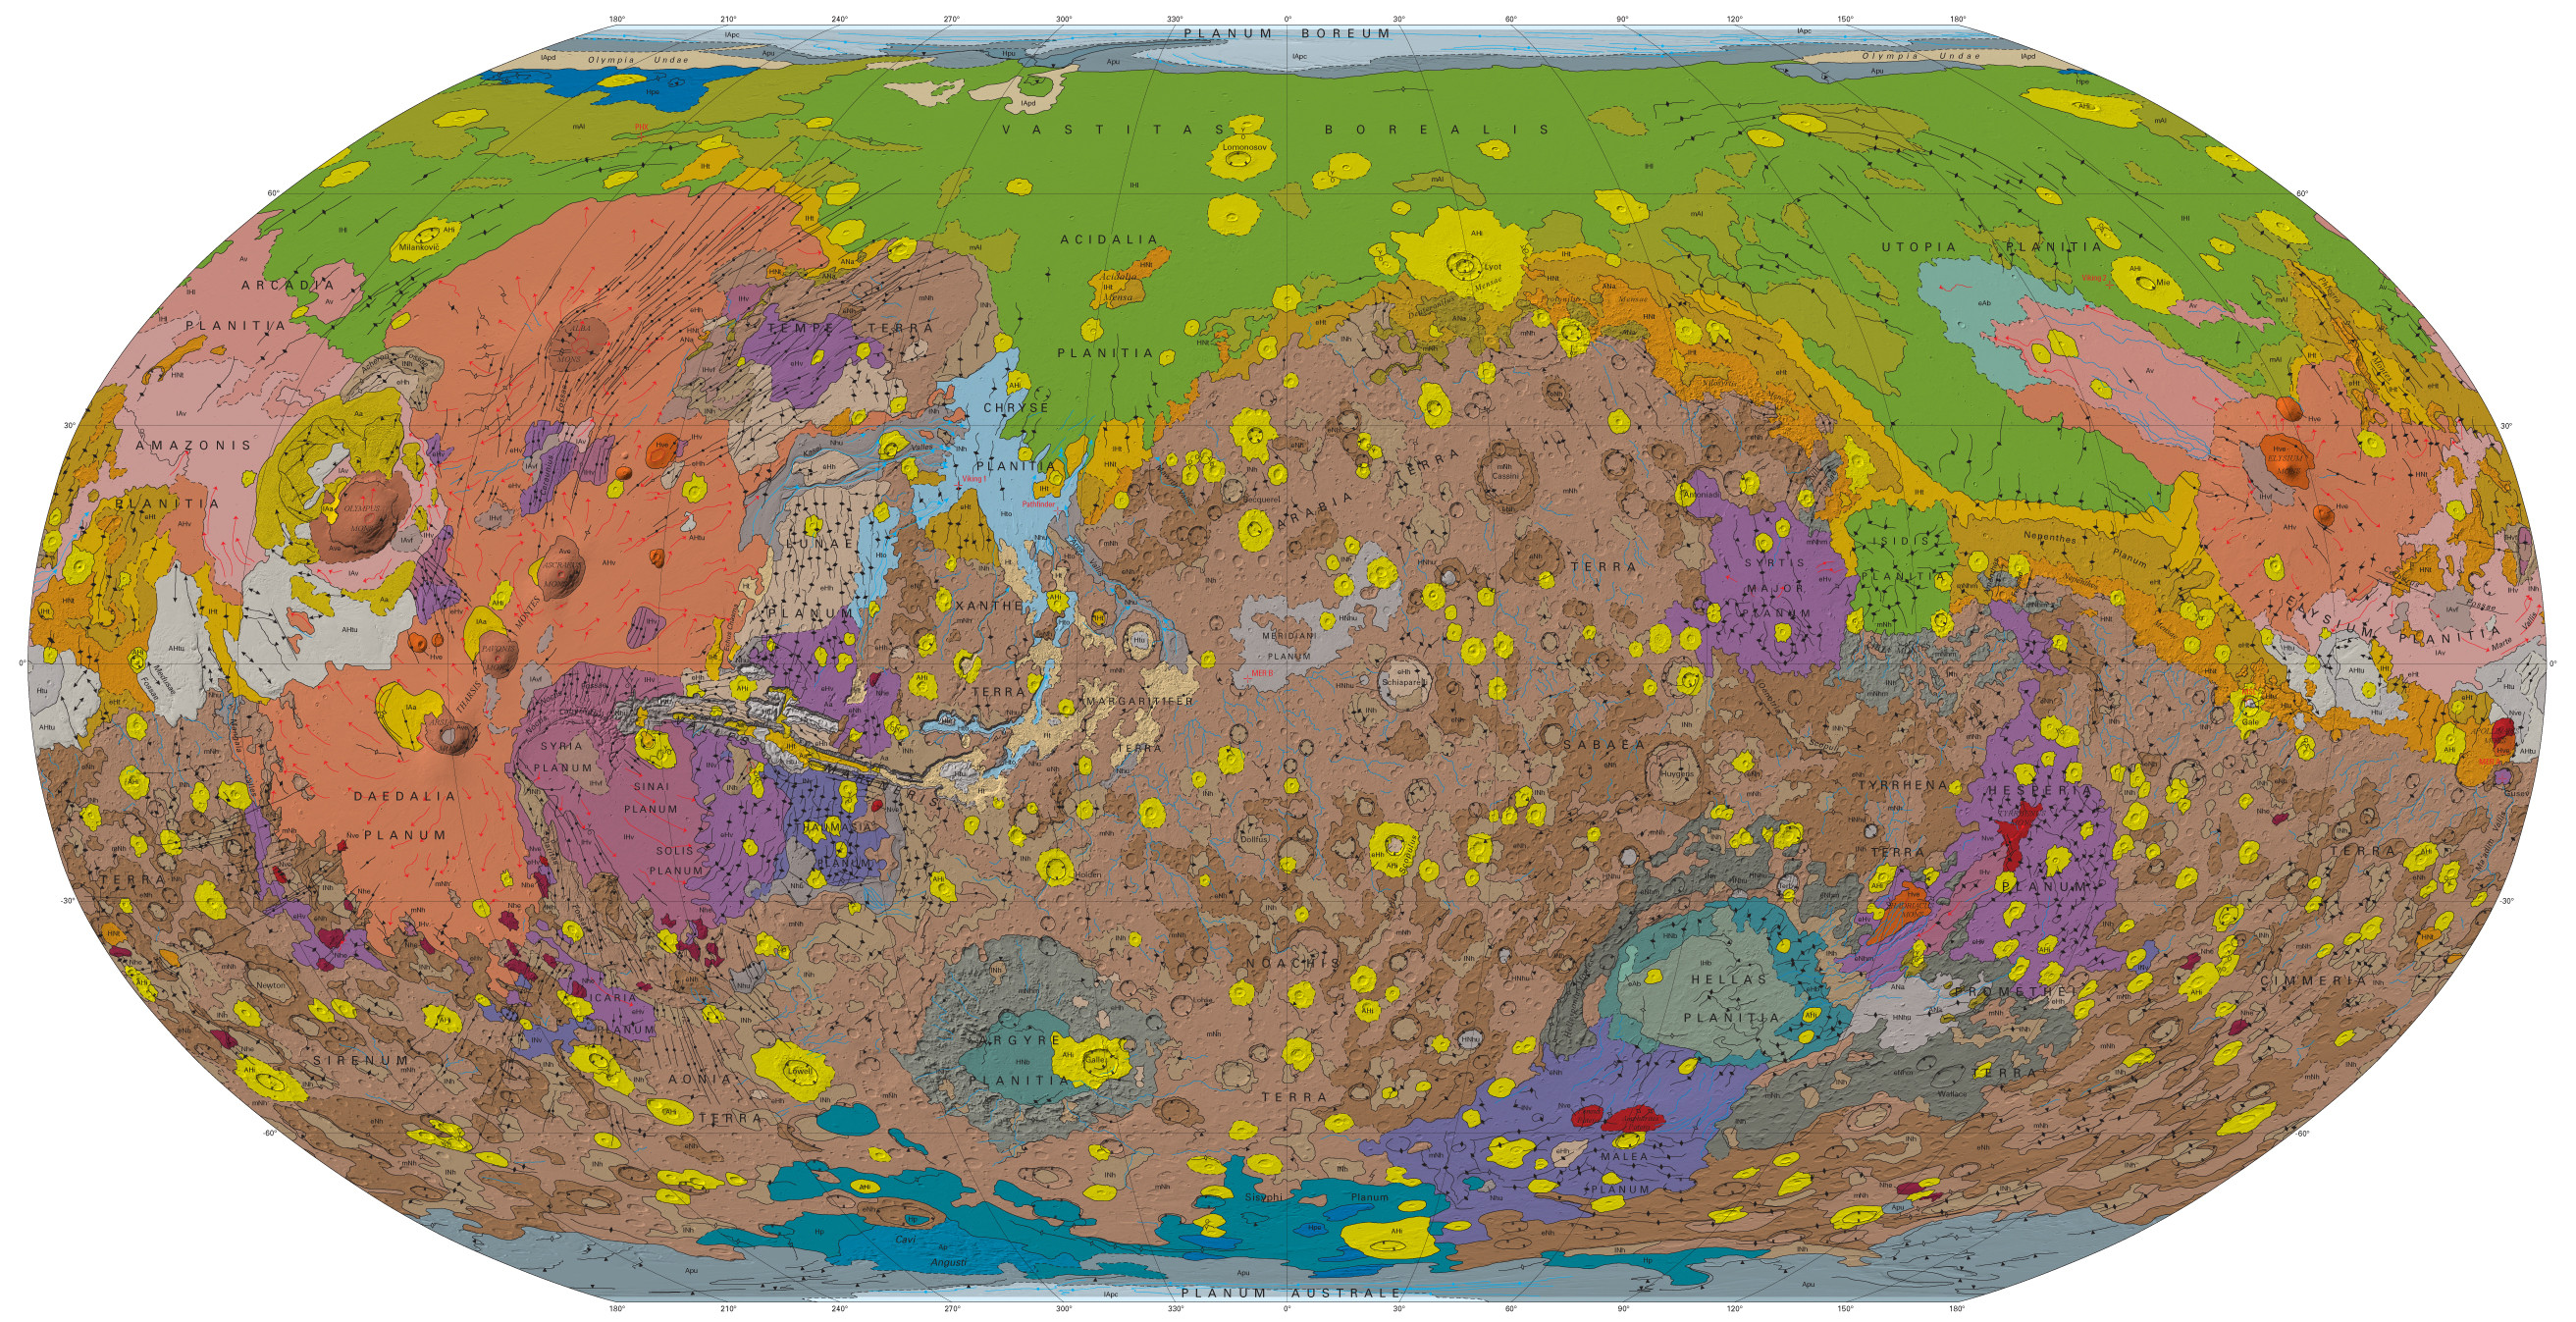 Geological survey of Mars